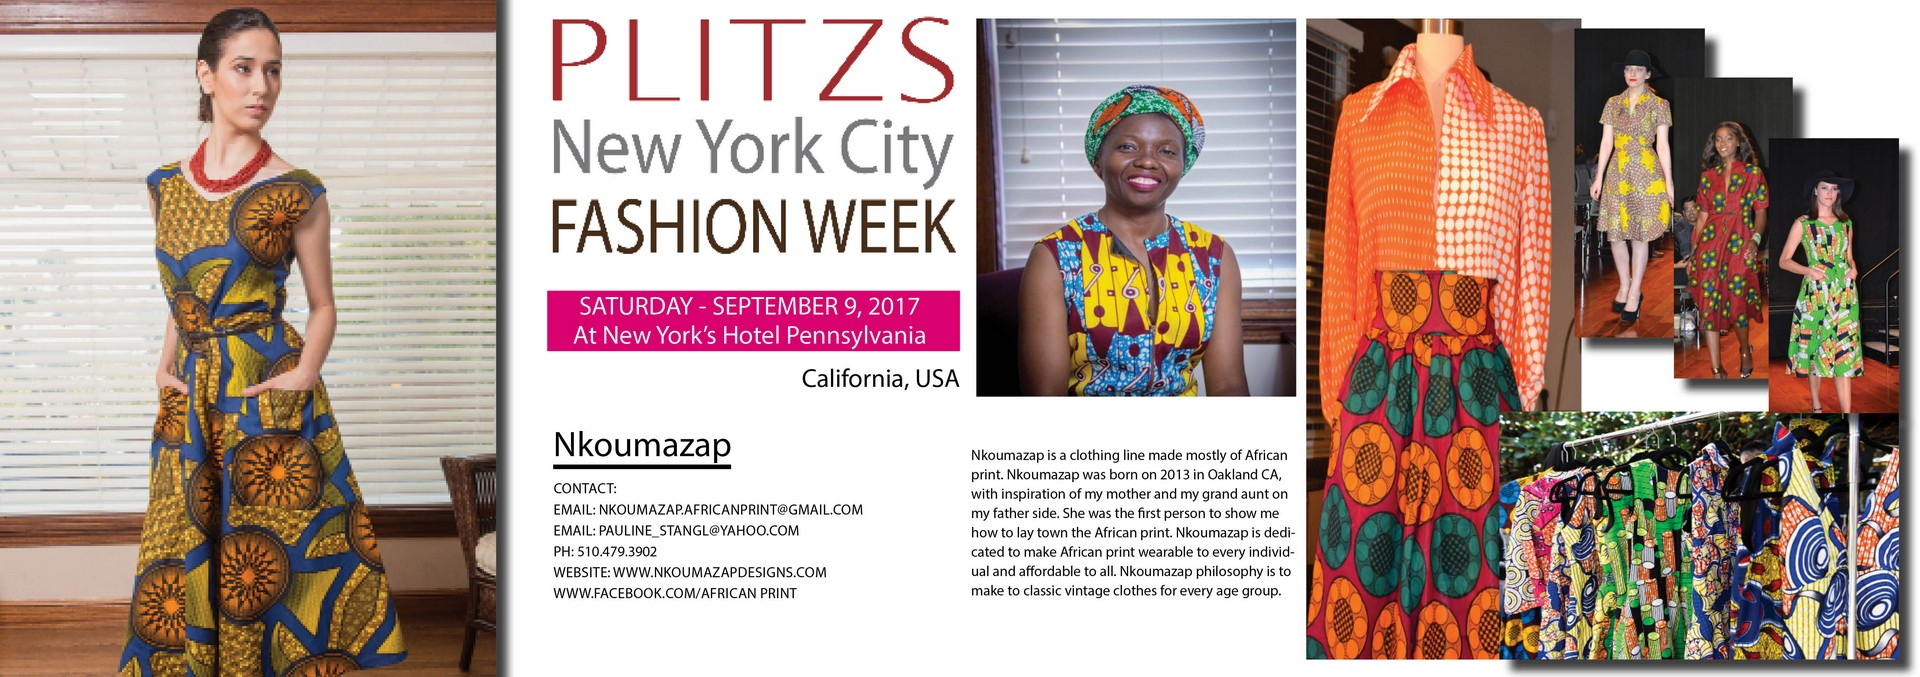 2 00pm Nkoumazap Designs By Pauline Stangl California Usa Plitzs New York City Fashion Week